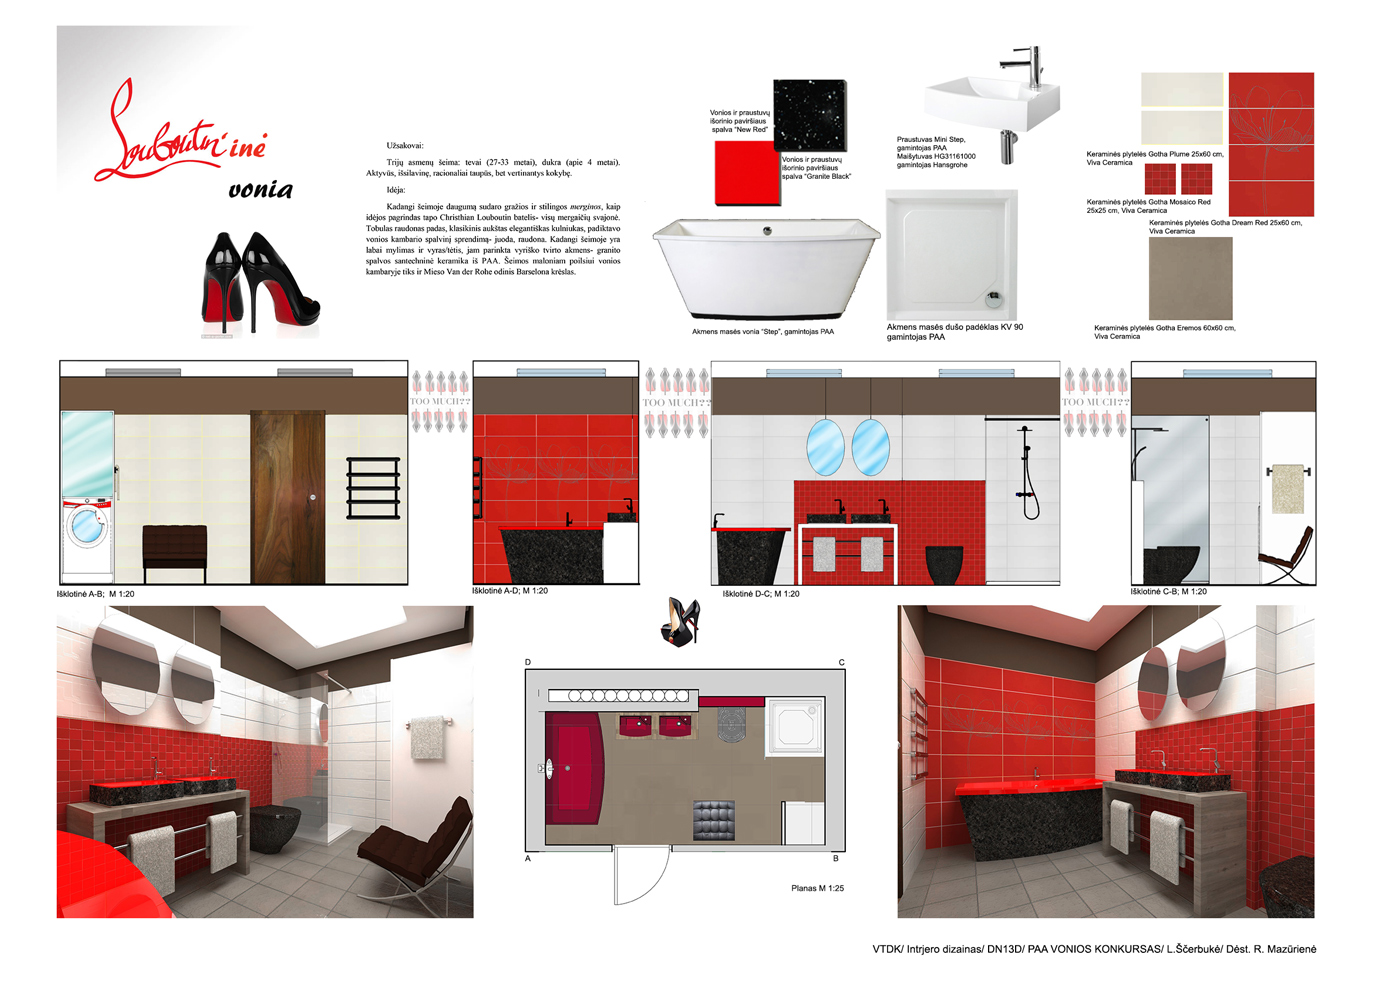 PAA Design Contest 2015 Lithuania Lina Erbuk Louboutine Bathtub